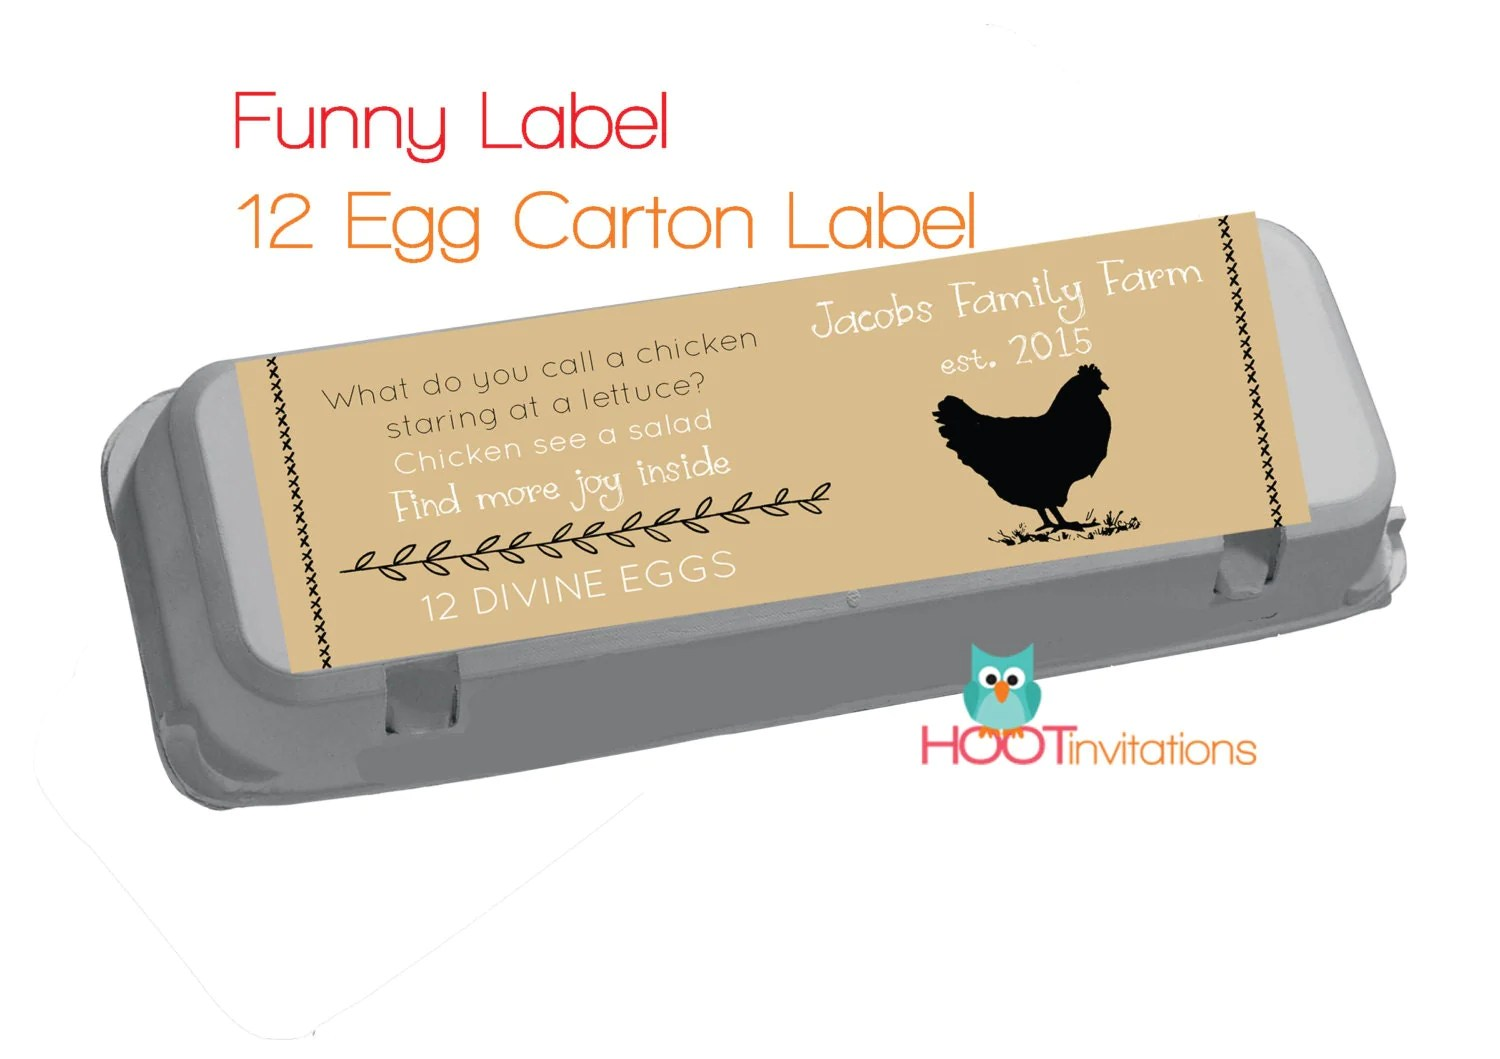 Funny Egg Carton Labels To Print At Home One Dozen 12 Egg